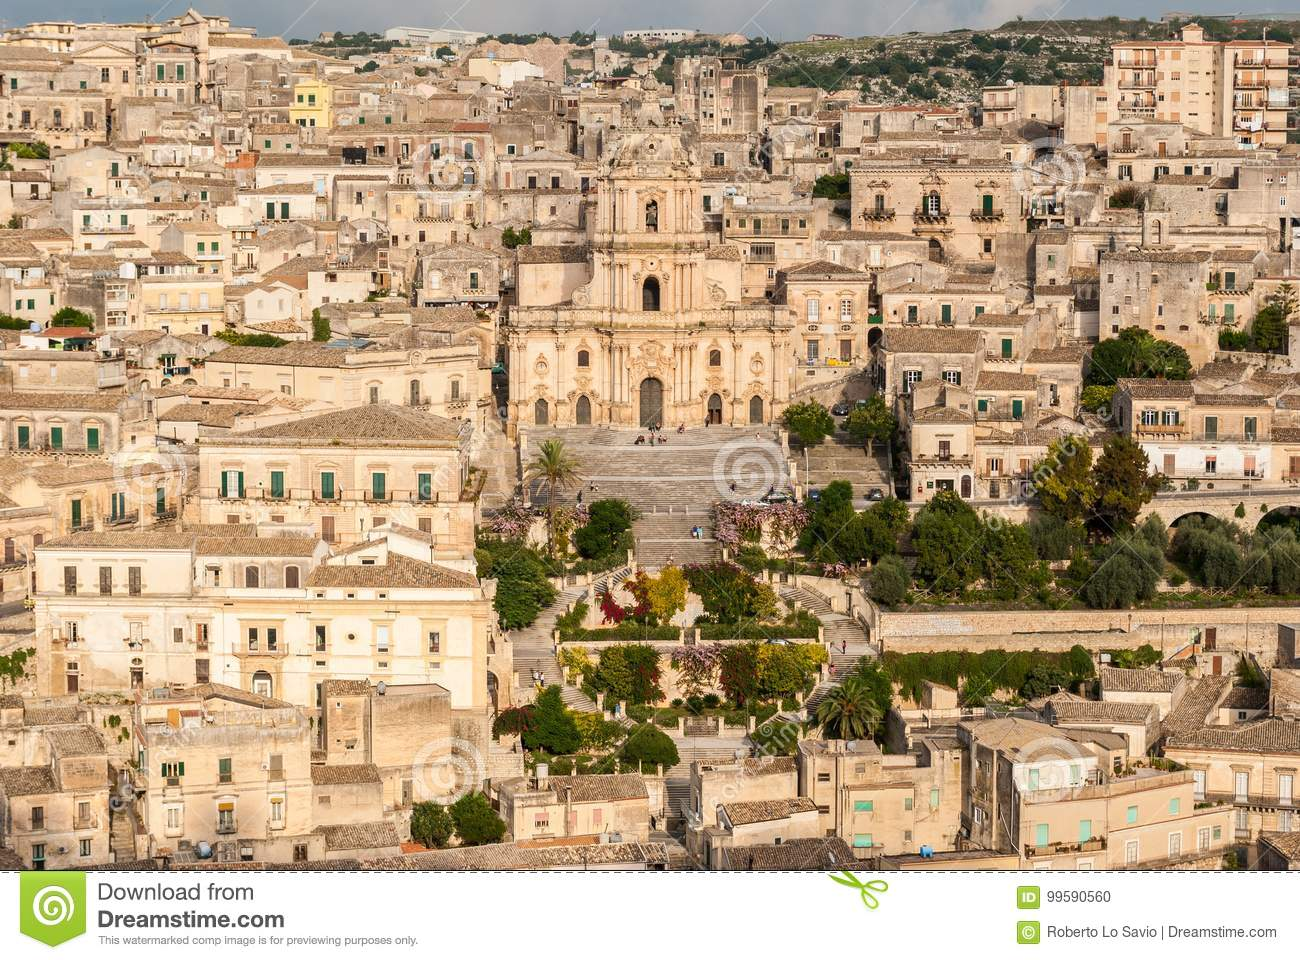 Panoramic view of Modica, with the cathedral of San Giorgio